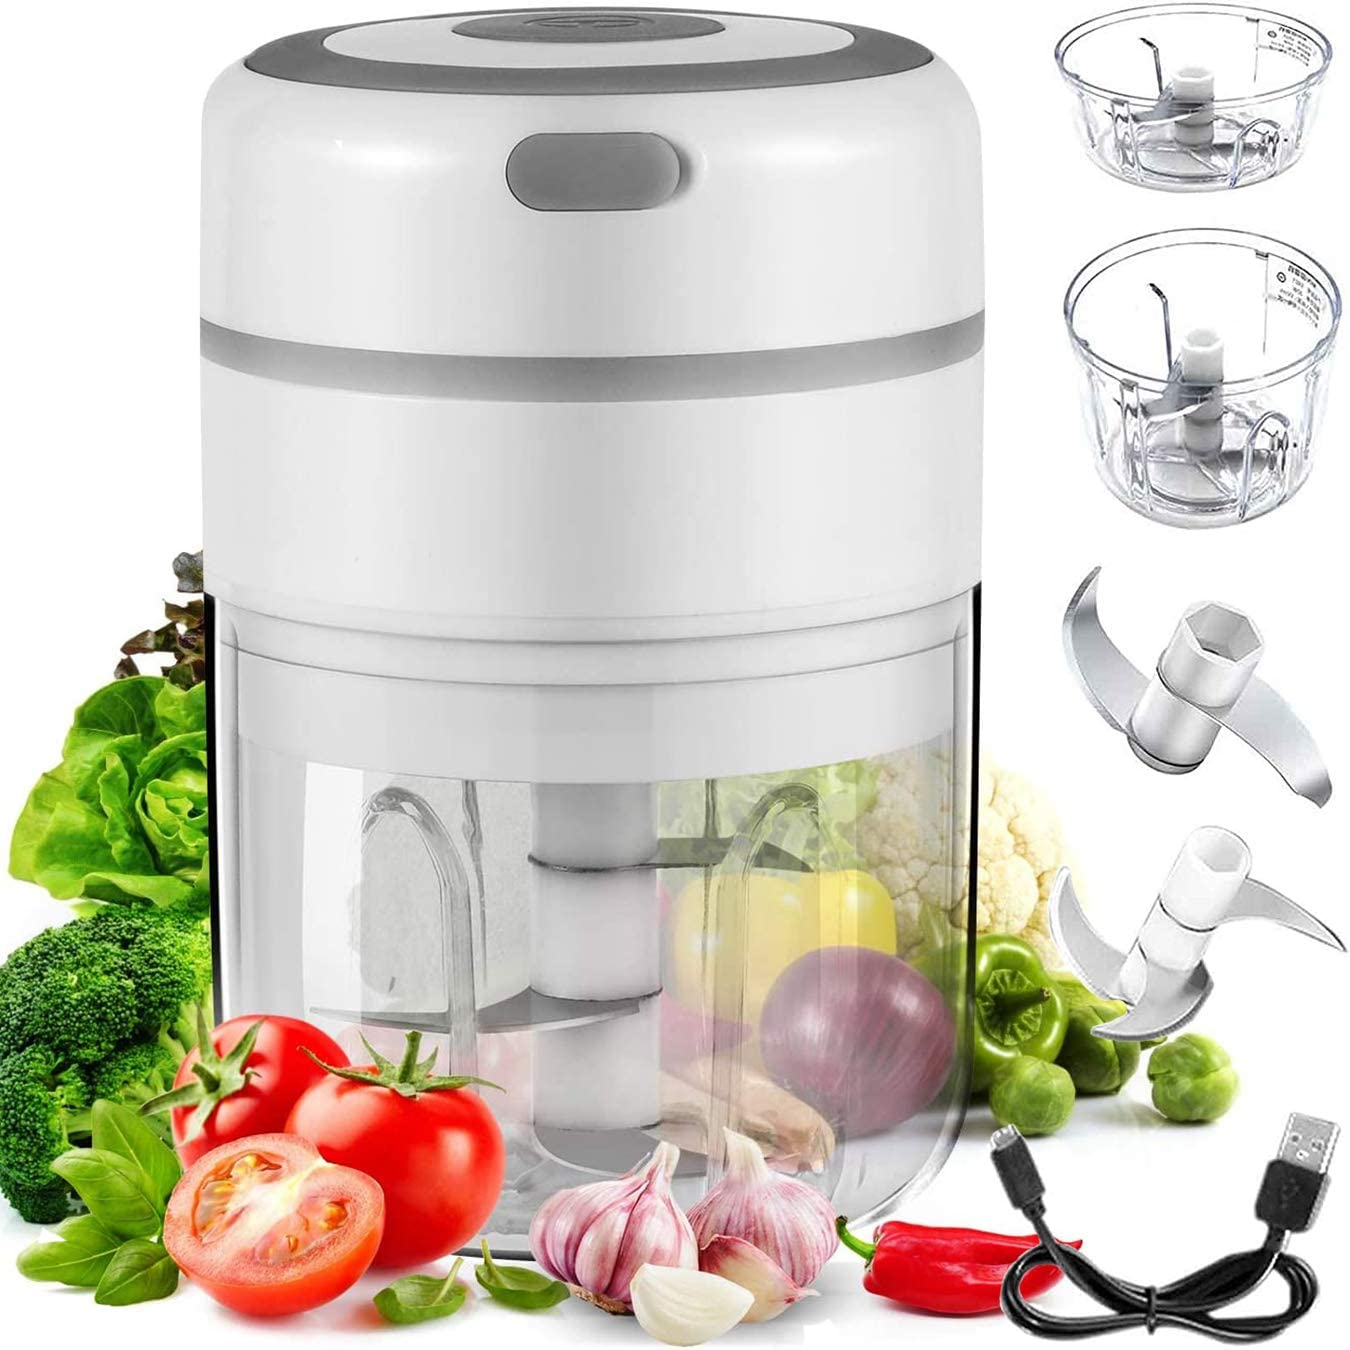 Electric Mini Garlic Chopper, Mini Chopper Food Processor, Handheld Mincer Electric Food Chopper for Chop Onion Nut Ginger Vegetable Pepper Spice Meat, Easy Cleaning(incold 3.5oz & 8.5oz) (White)